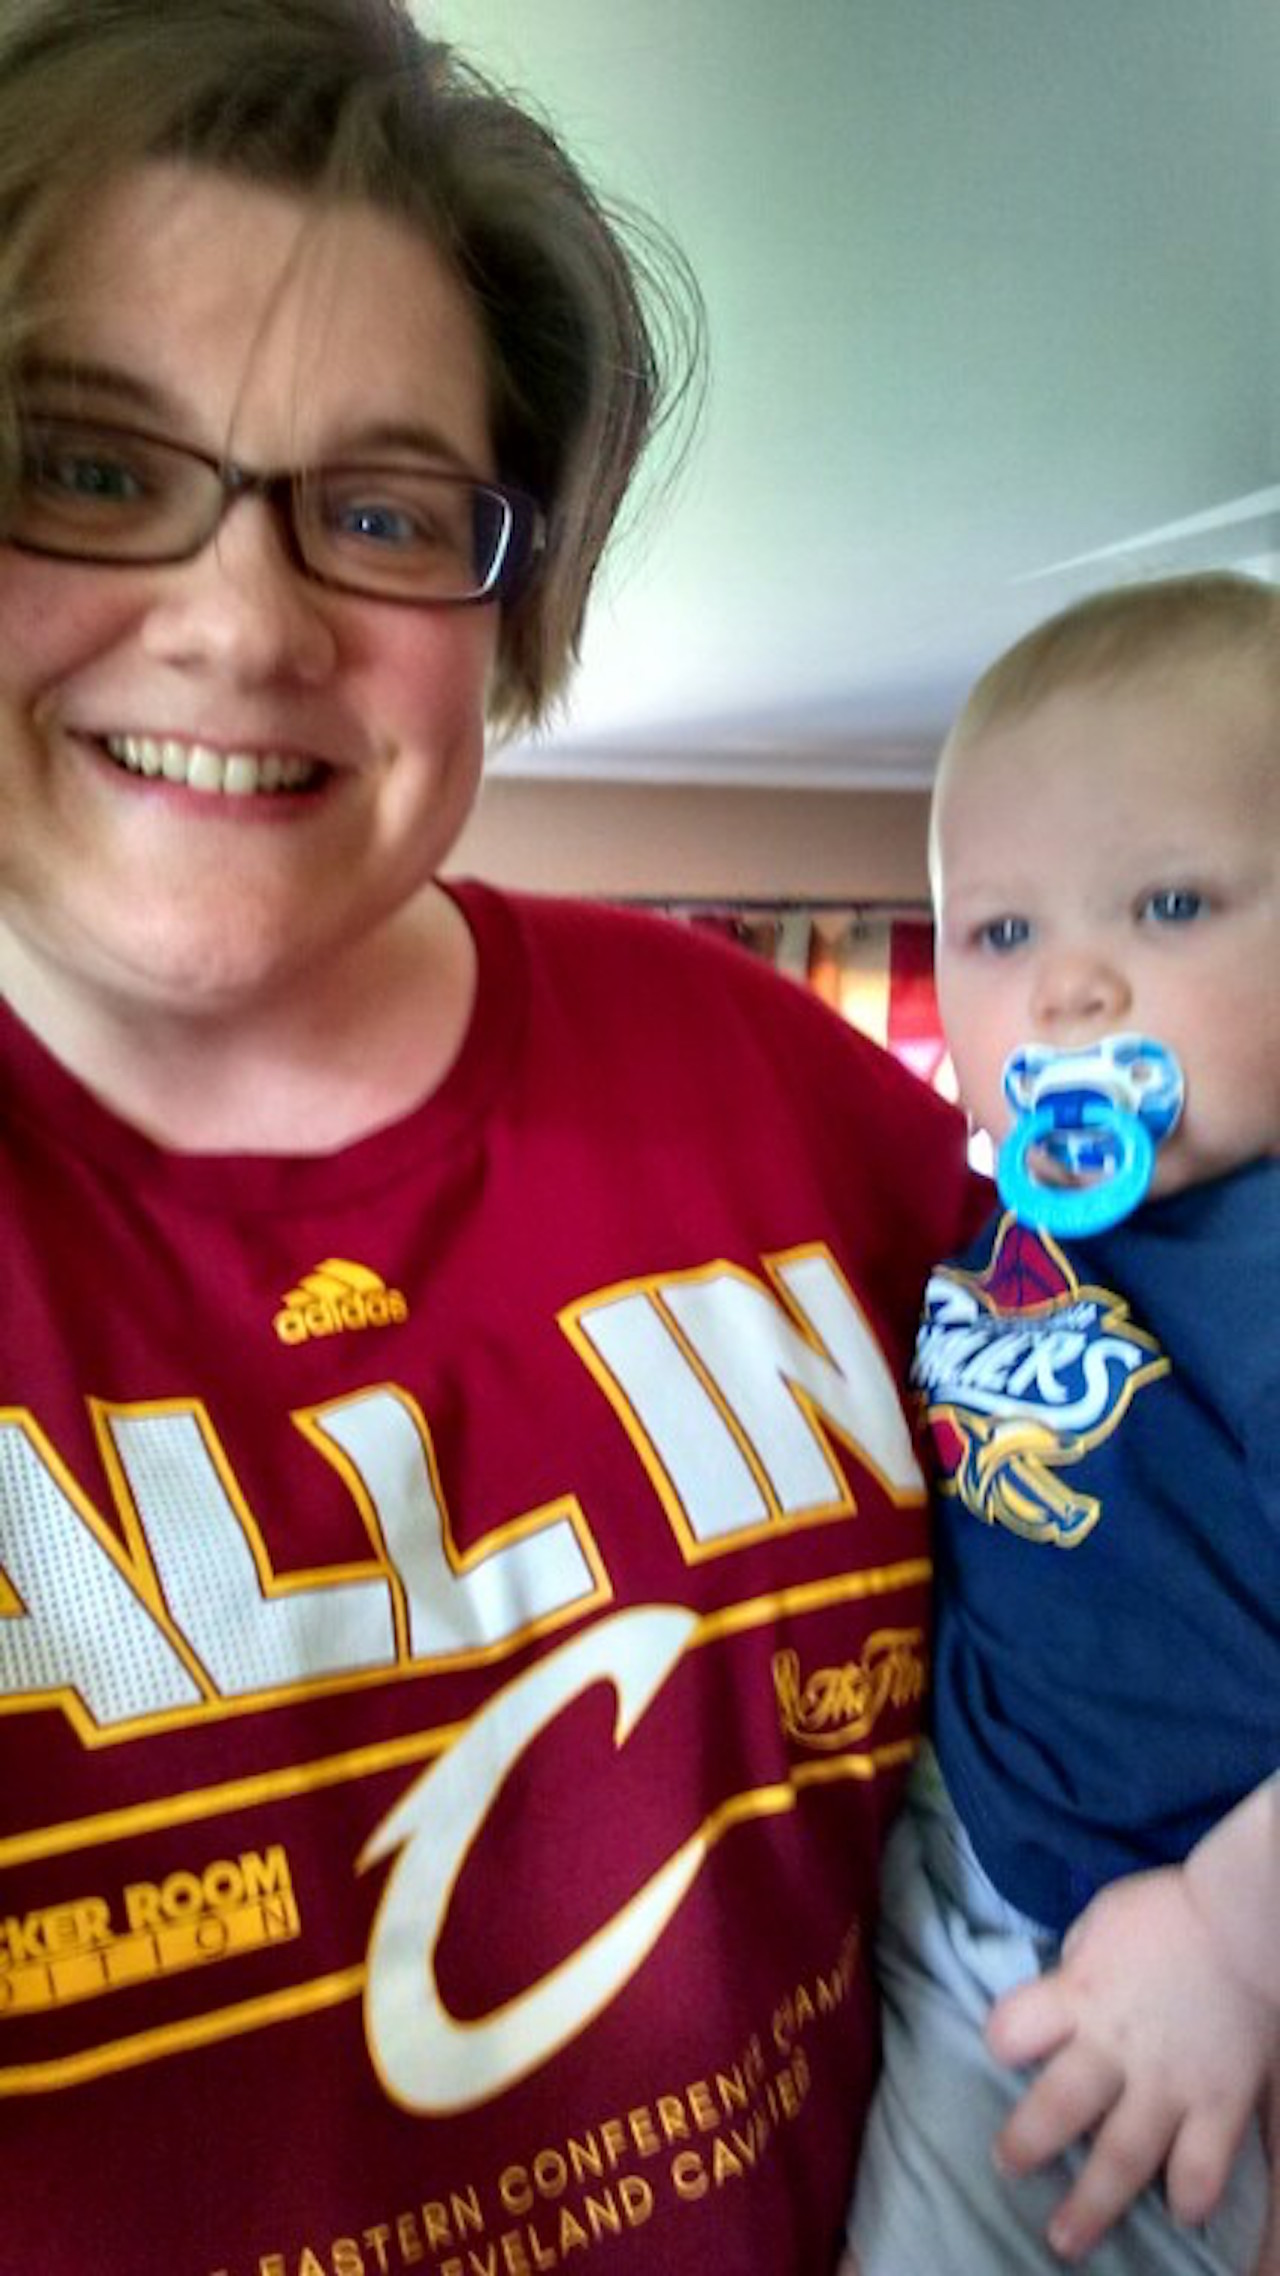 mom in cavs shirt holding baby in cavs shirt